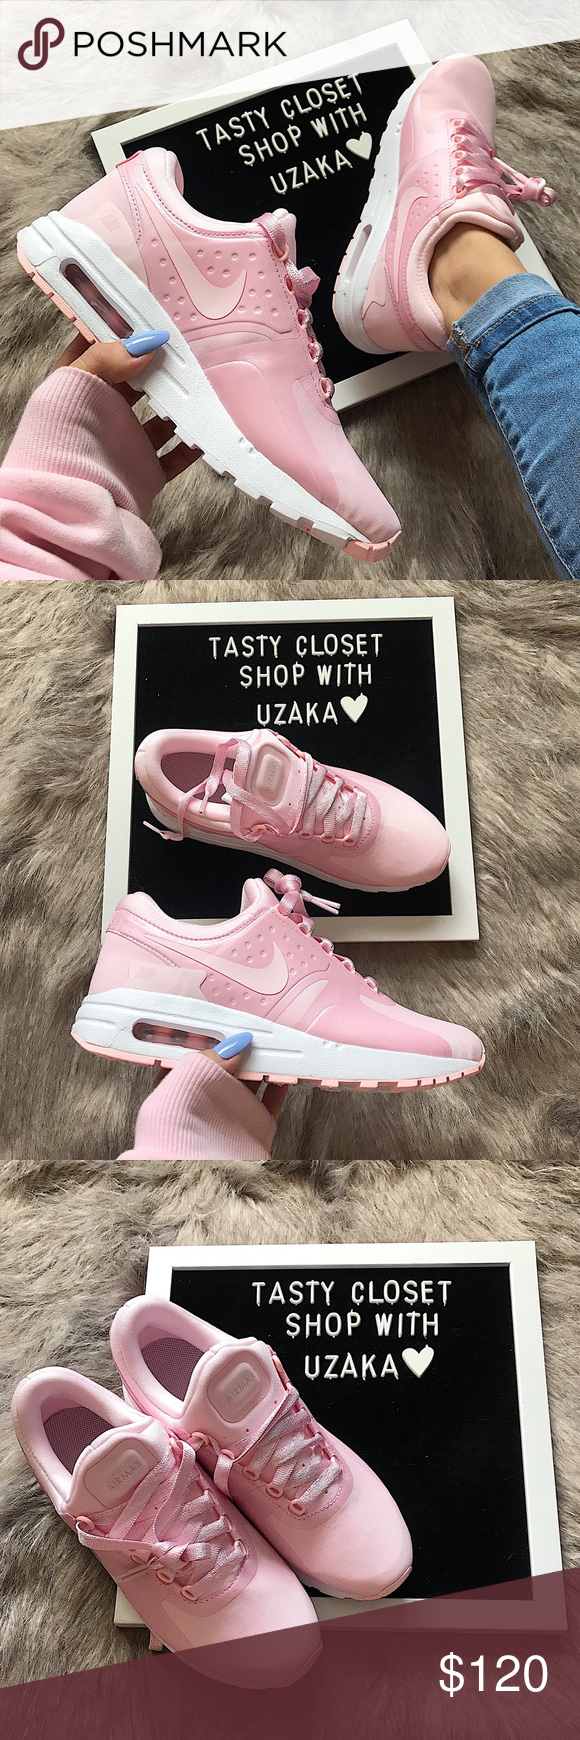 a9a0850bda Spotted while shopping on Poshmark: Nike air max zero se sneakers!  #poshmark #fashion #shopping #style #Nike #Shoes